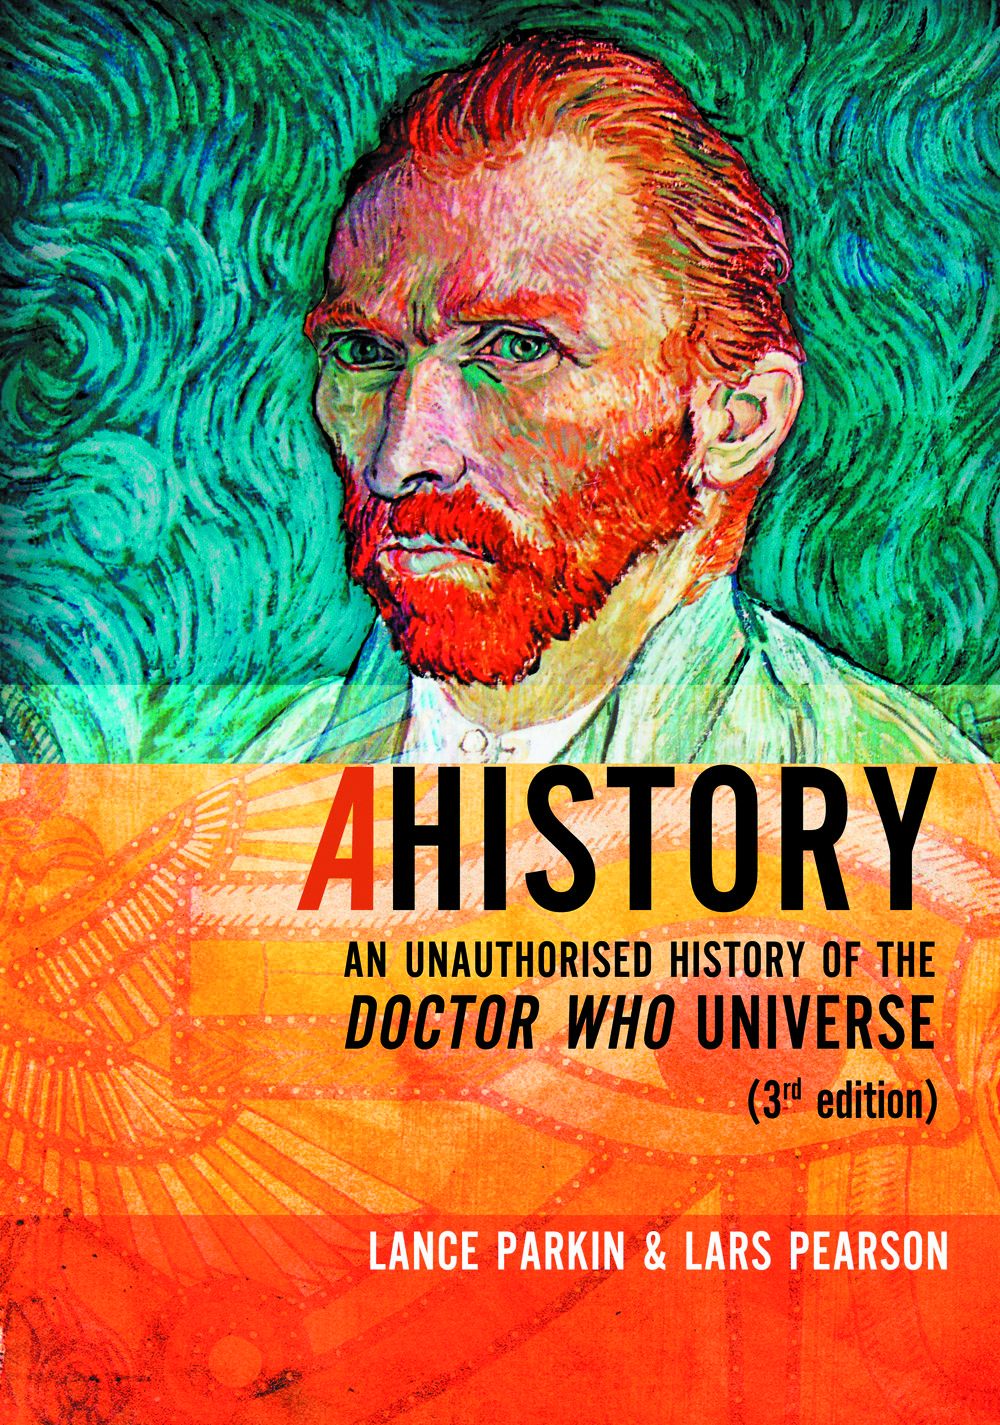 AHISTORY UNAUTH HIST OF DOCTOR WHO UNIVERSE 3RD ED